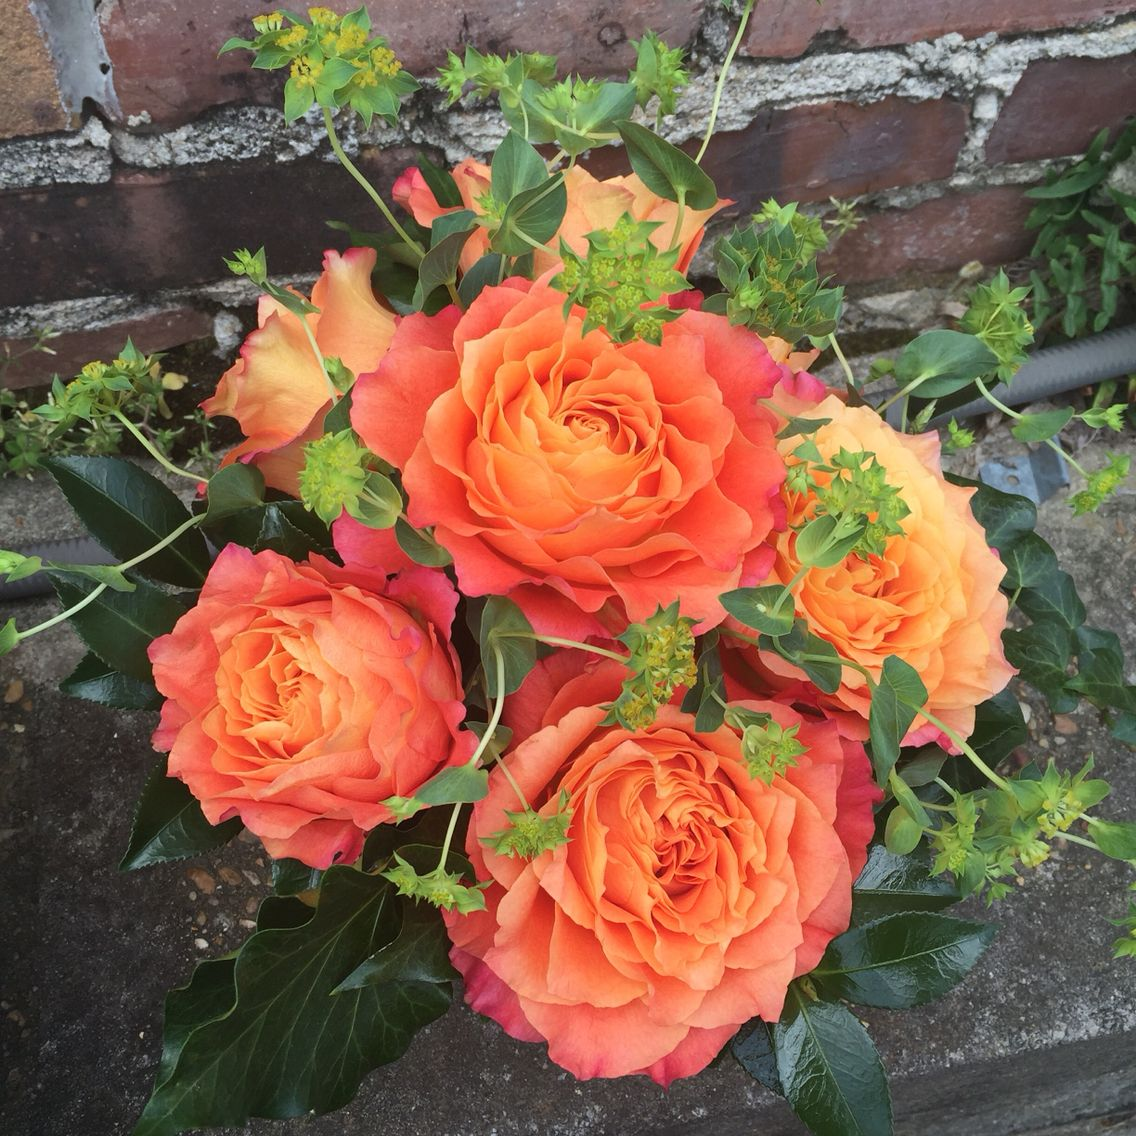 Love Garden Roses: In Love With These Free Spirit Roses!